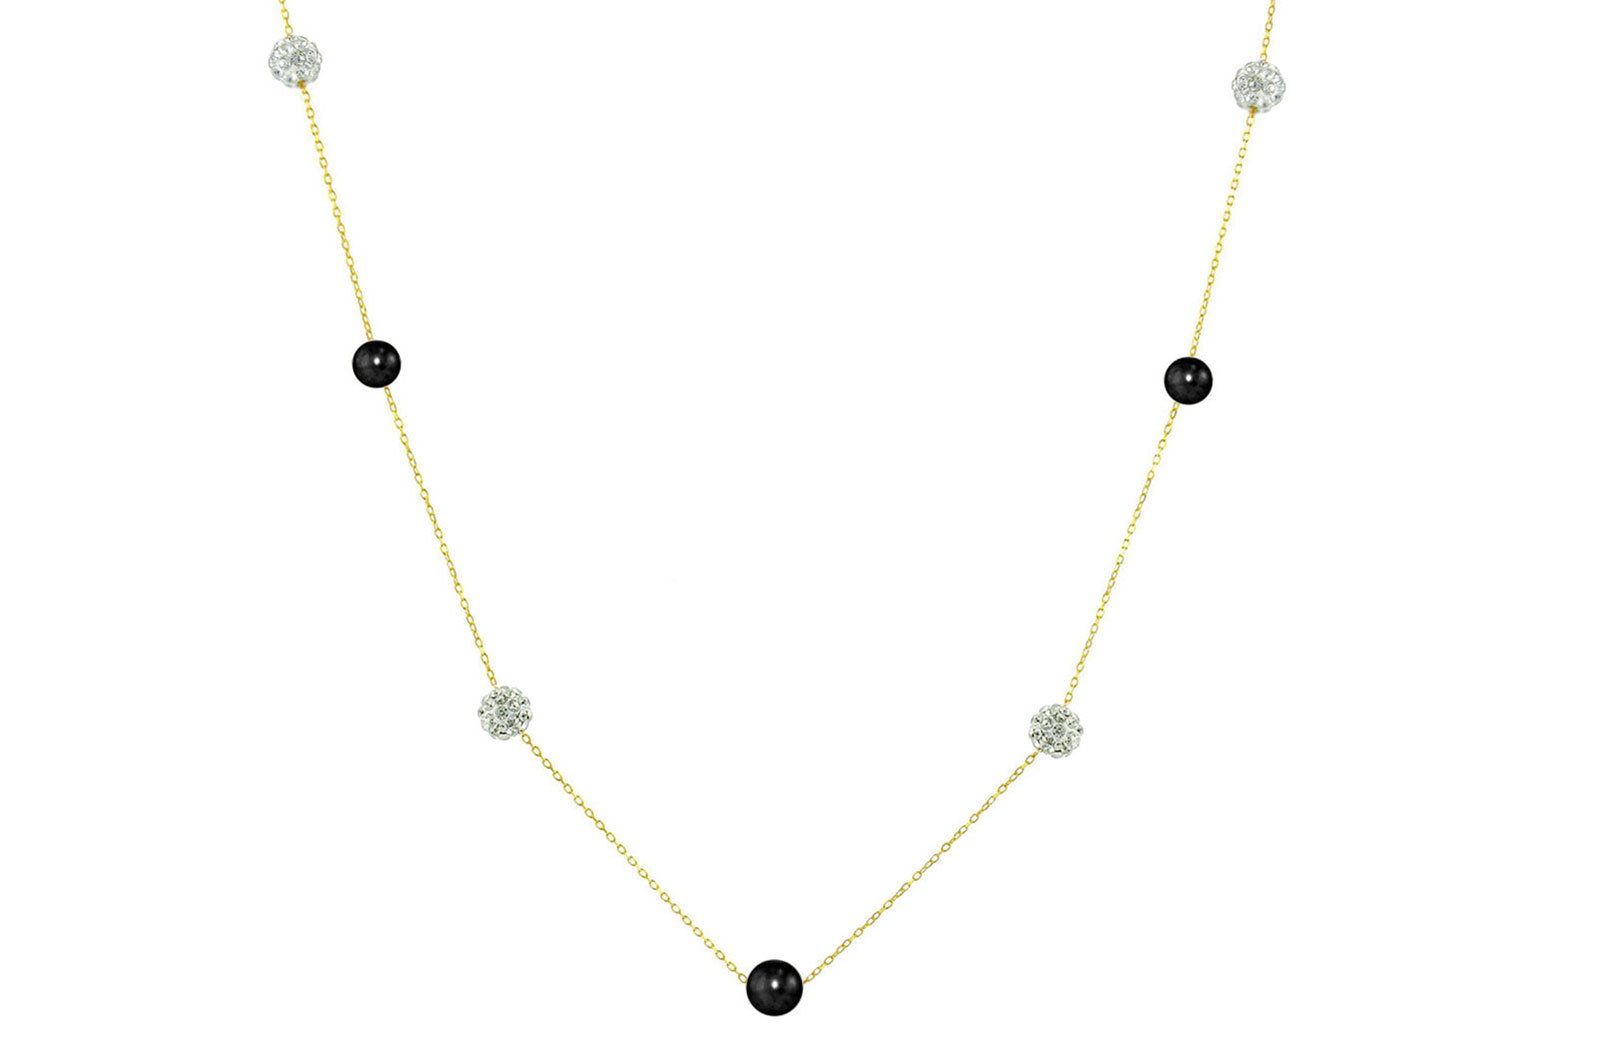 Vera Perla 18K Solid Gold Gradual Built-in 5-6mm Black Pearls and Crystal Ball Necklace